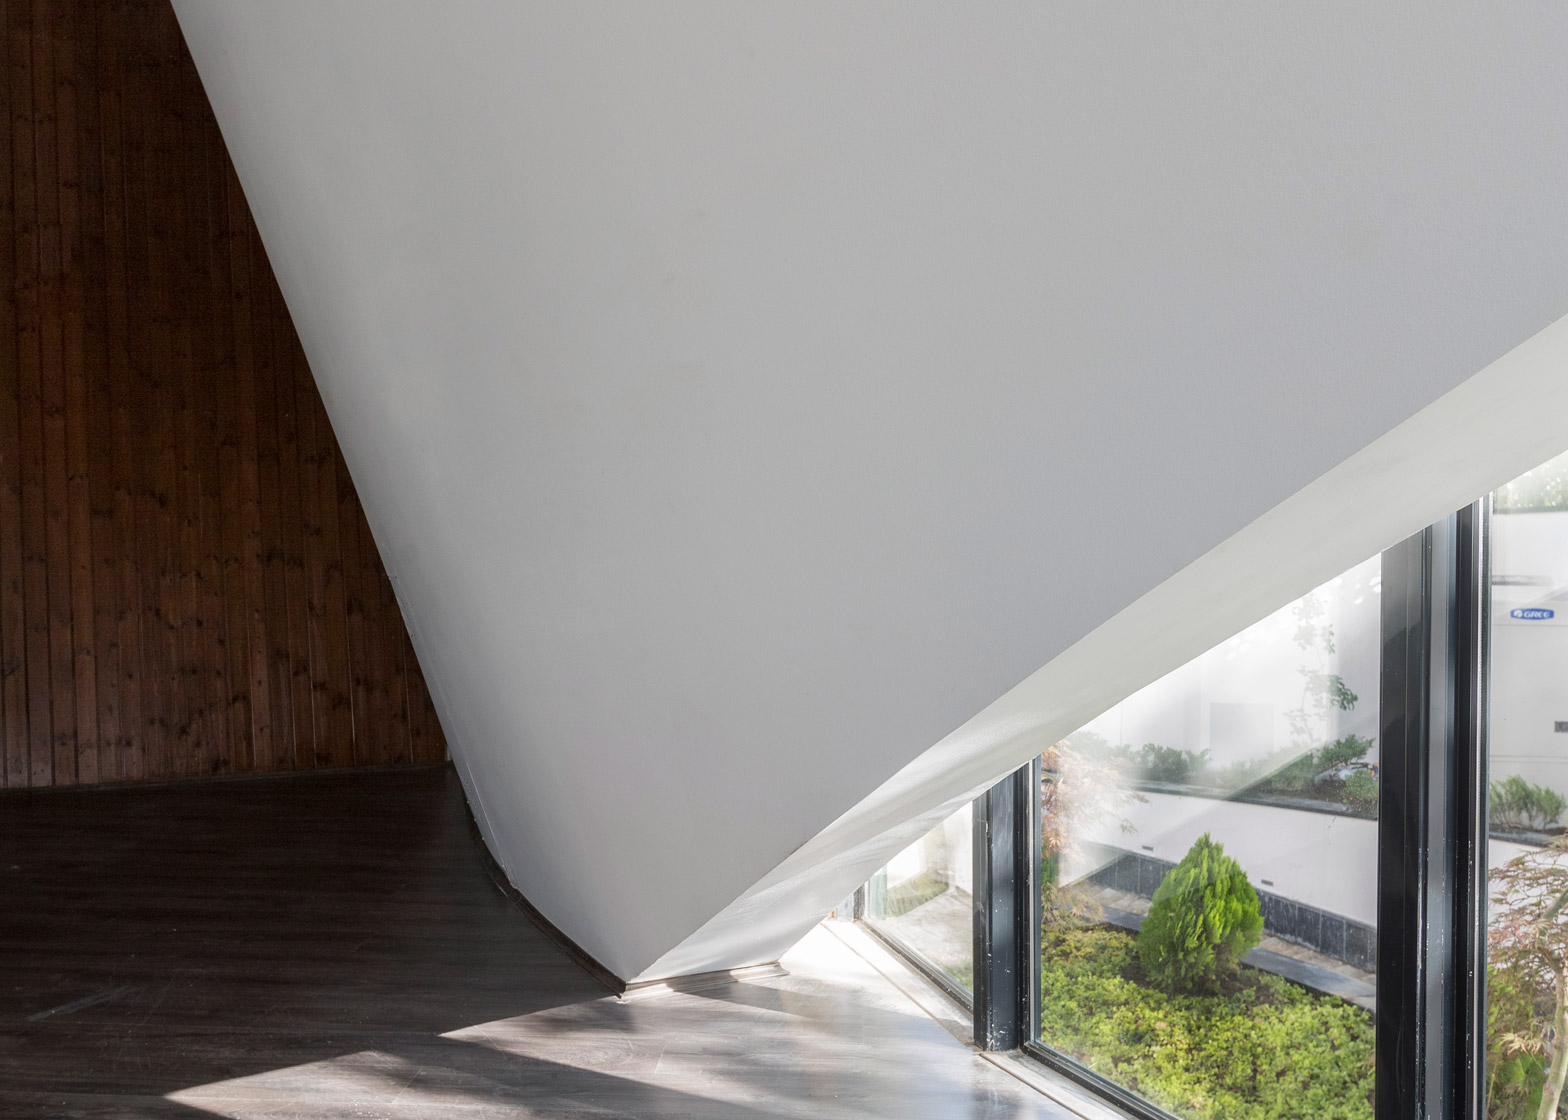 Villa for Younger Brother is a house in Tehran designed by Alireza Tahgaboni